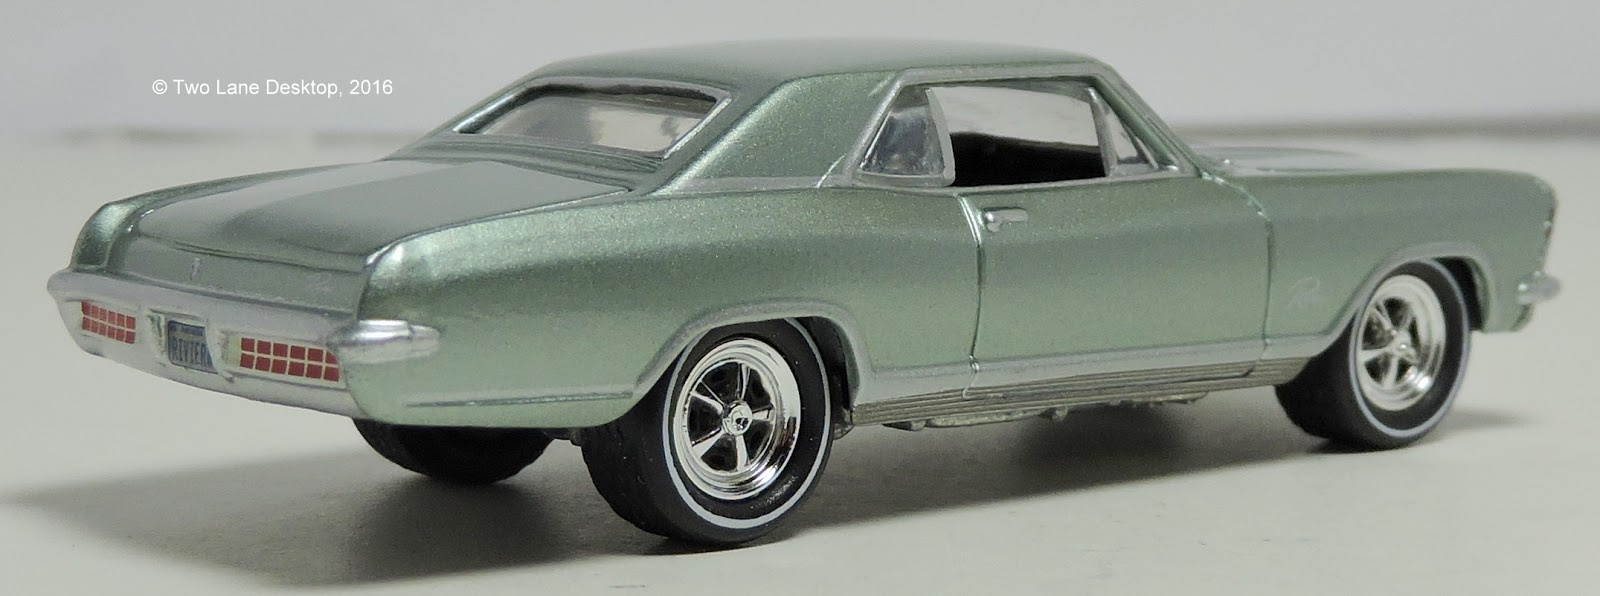 The latest include the classy buick riviera and for the first time the 1978 dodge pickup without the little red express